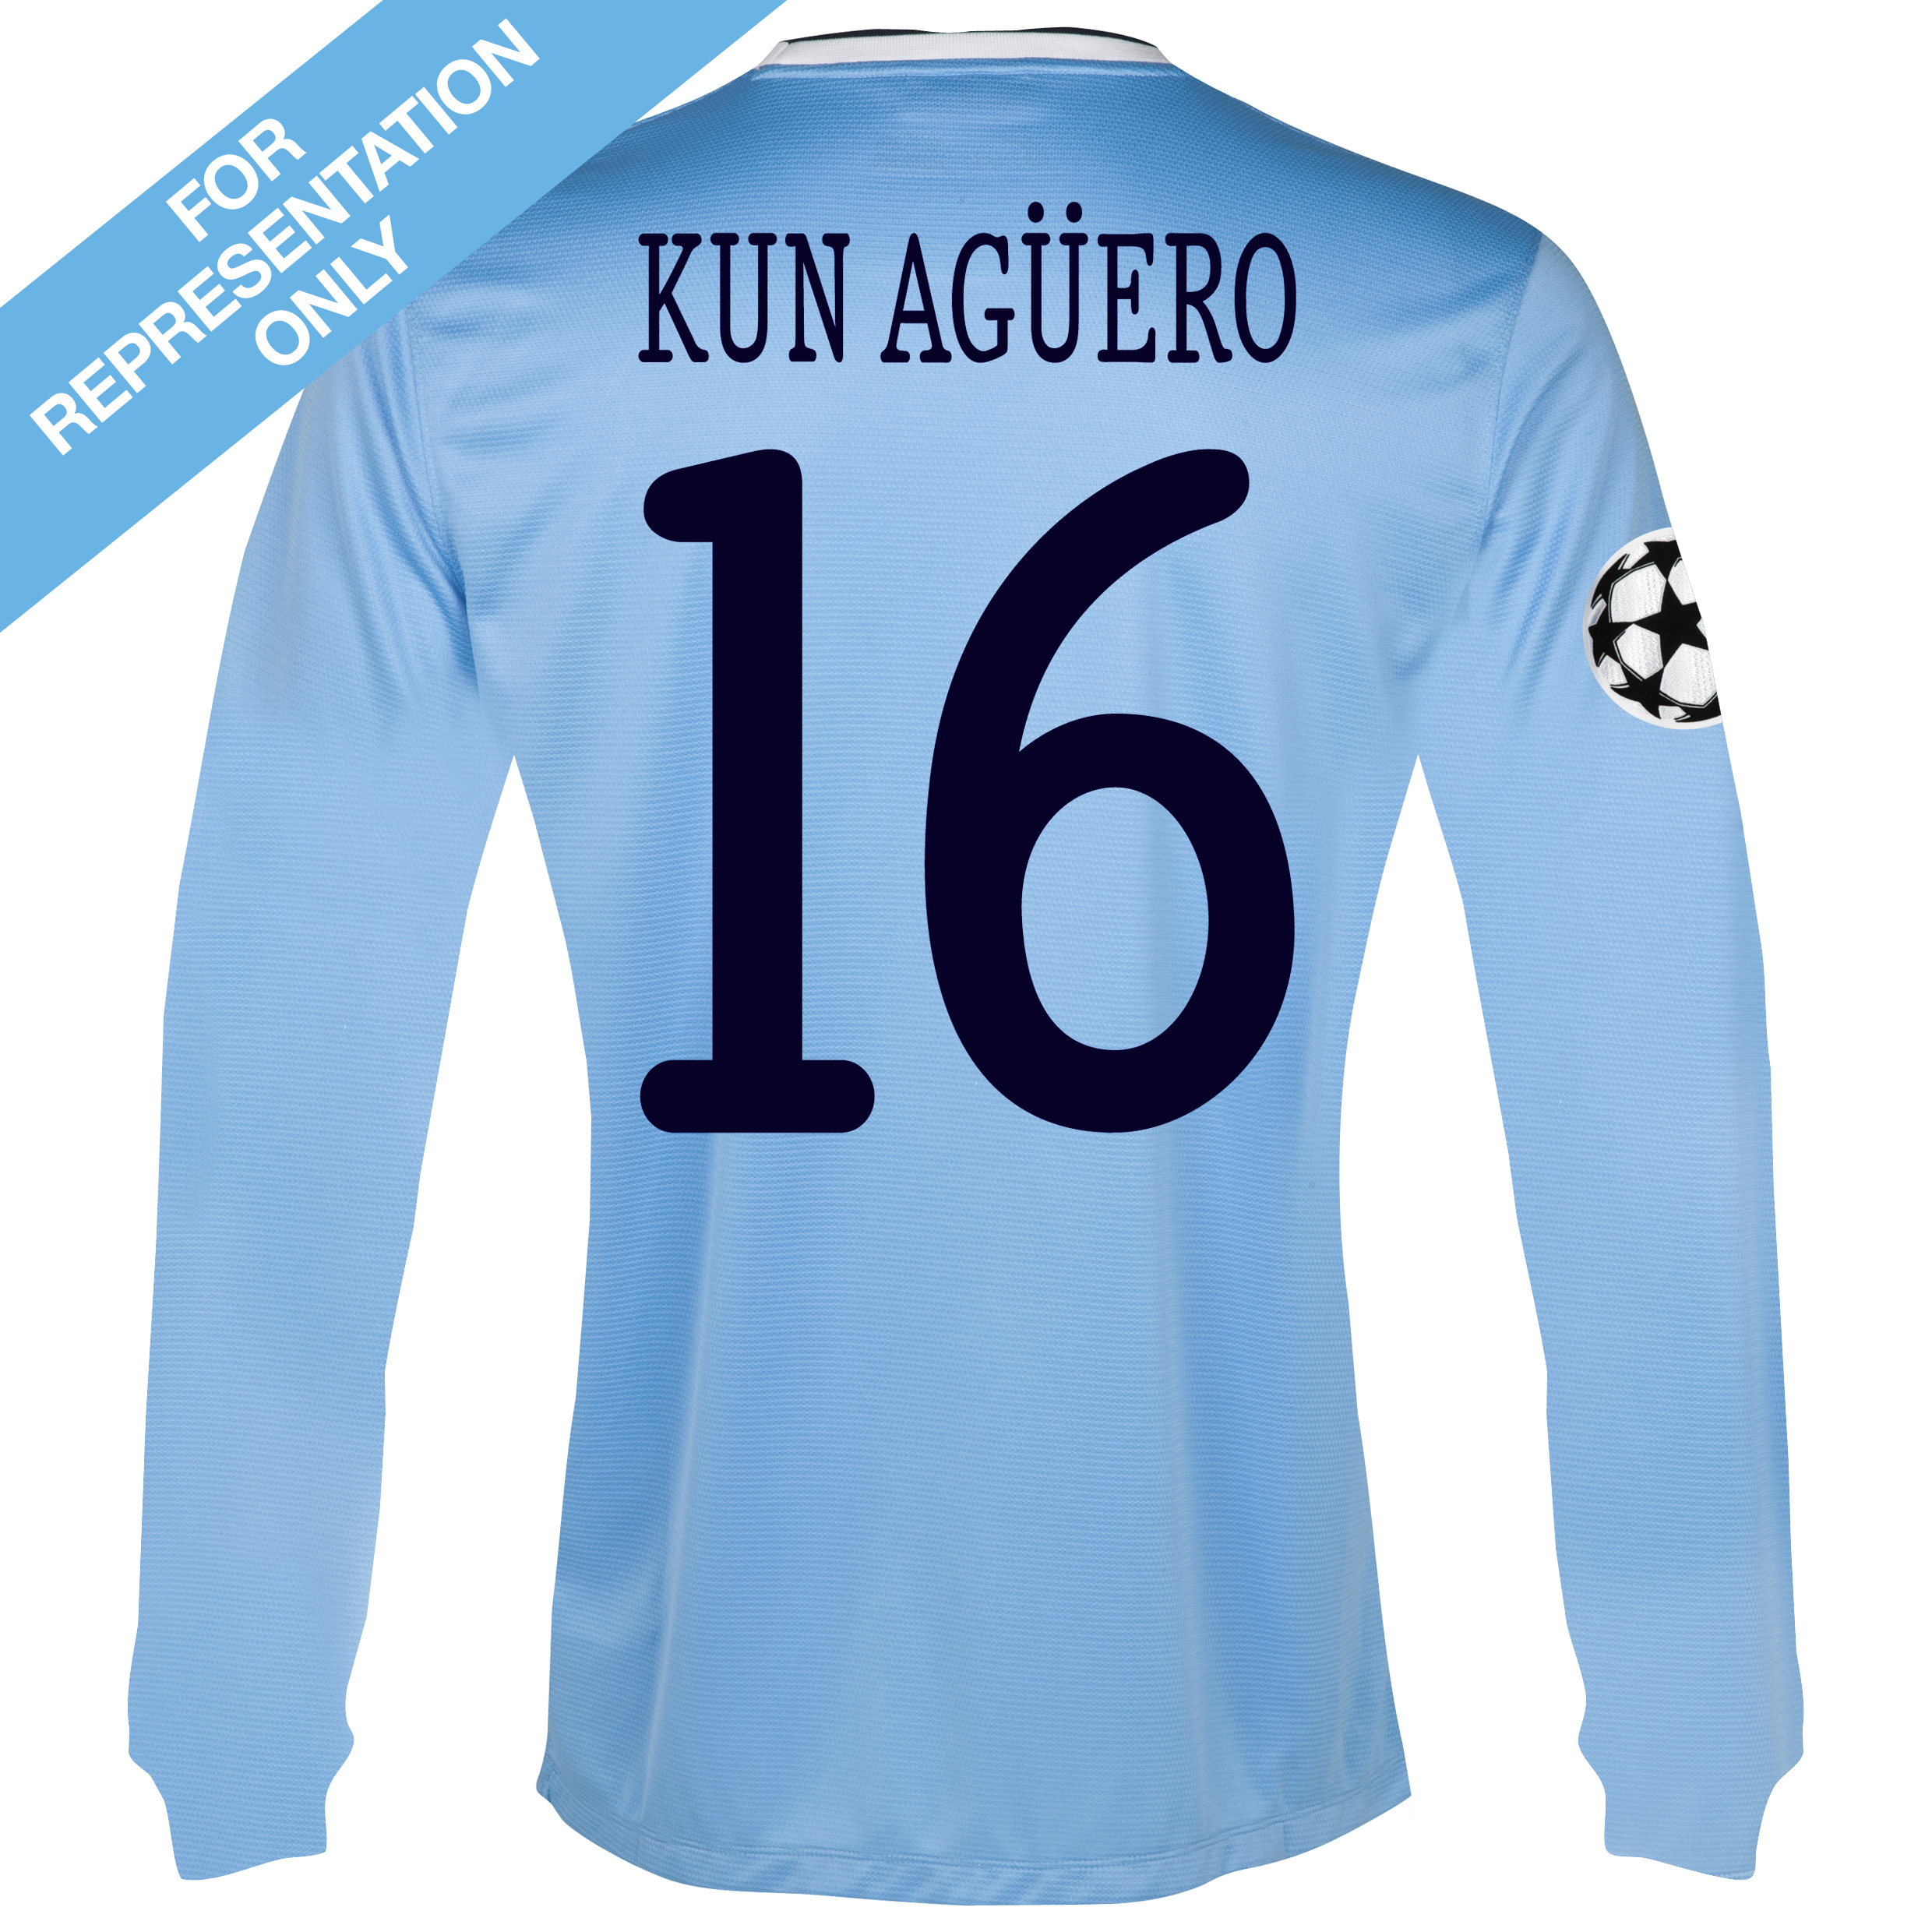 Manchester City UEFA Champions League Home Shirt 2013/14 - Long Sleeved with Kun Agüero  16 printing